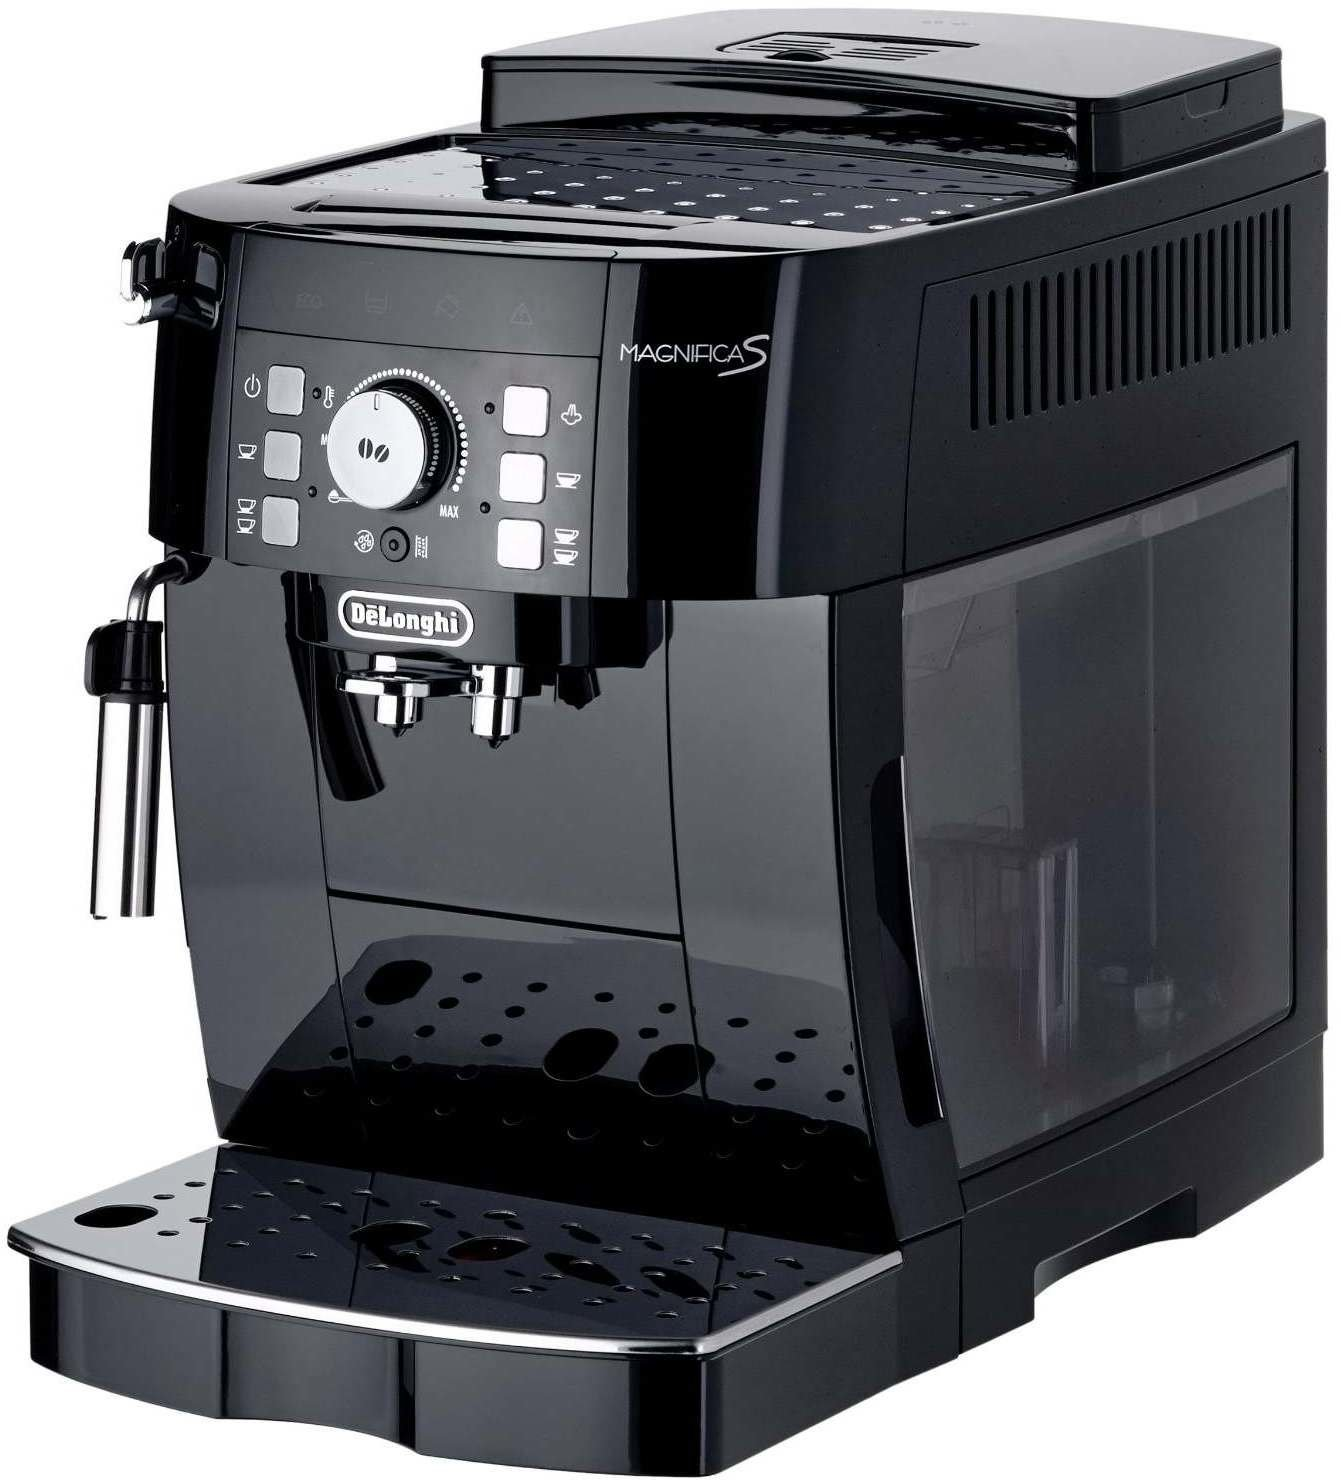 delonghi ecam magnifica s kaffeevollautomat im test auf. Black Bedroom Furniture Sets. Home Design Ideas